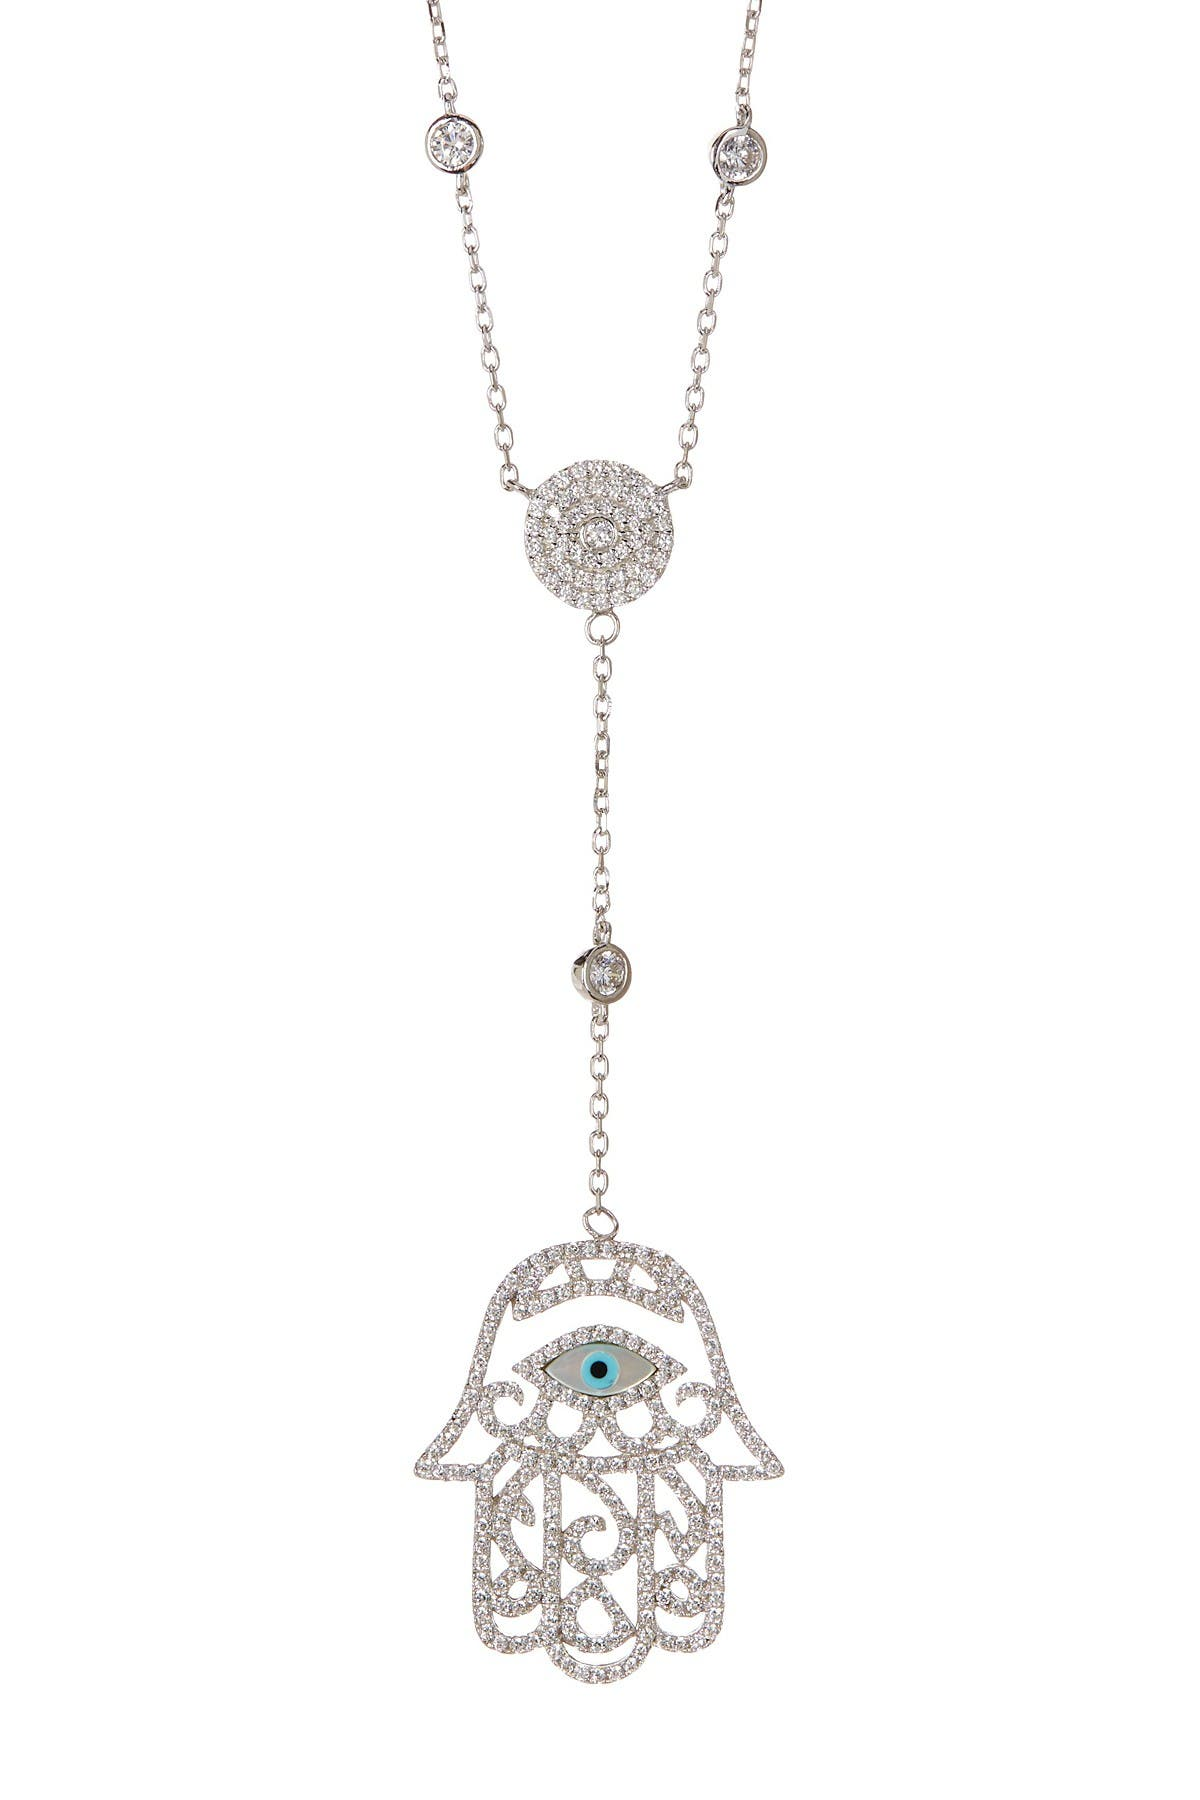 Image of Savvy Cie Italian Simulated White Topaz Mother of Pearl Hamsa Pendant Necklace